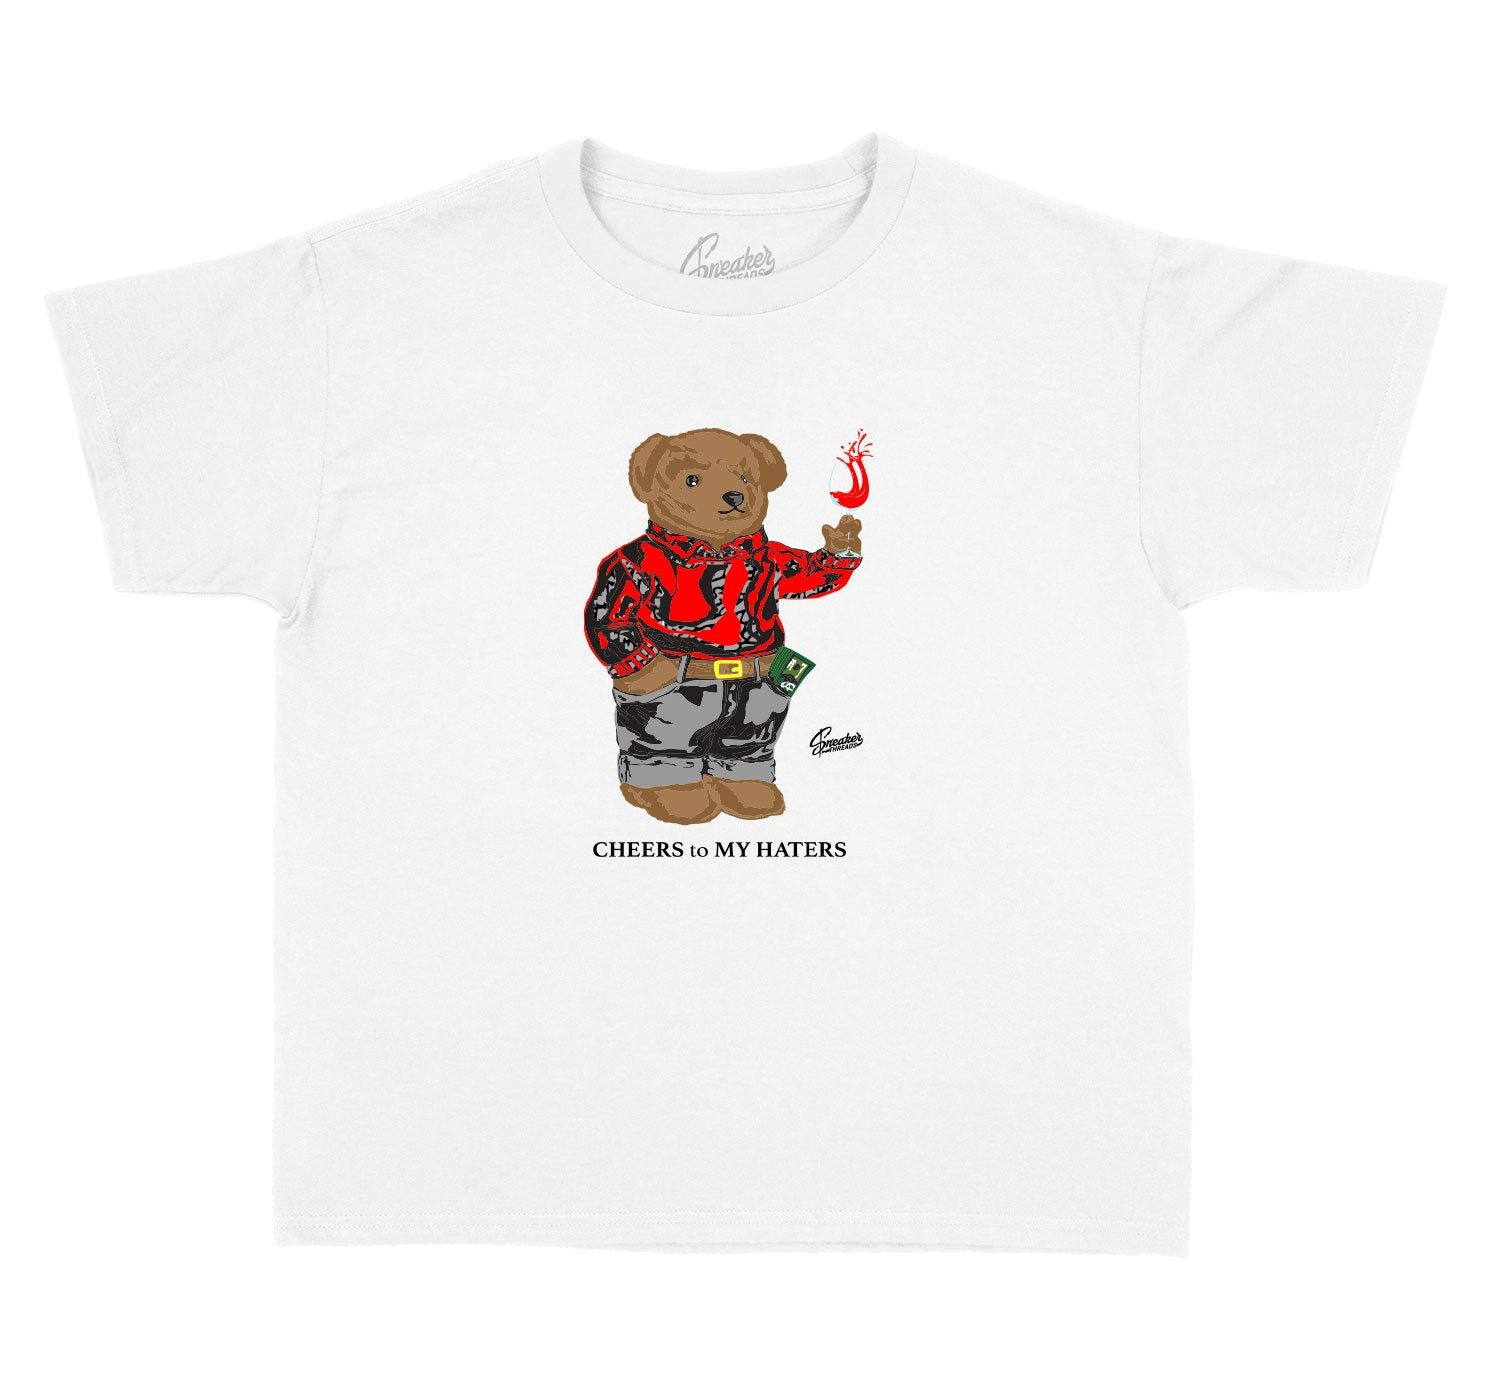 Cheers Bear fresh shirts for kids to match Jordan 3 Cements